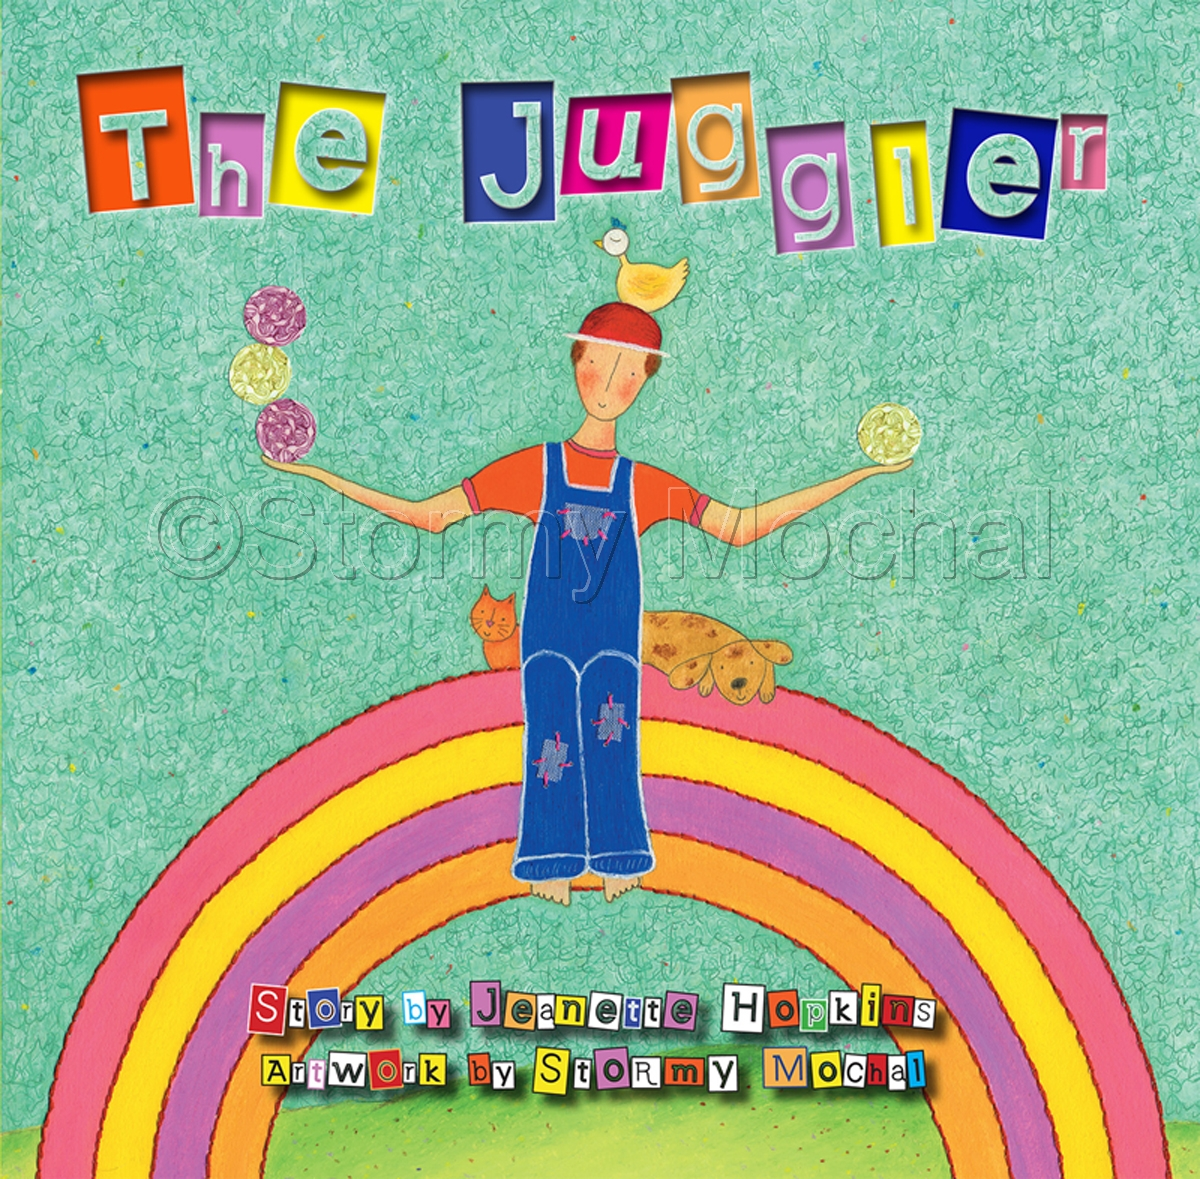 The children's book The Juggler illustrated by Stormy Mochal.    Children will delight in this heartfelt story about a young farmer who yearns to juggle.  Autographed by the illustrator. (large view)